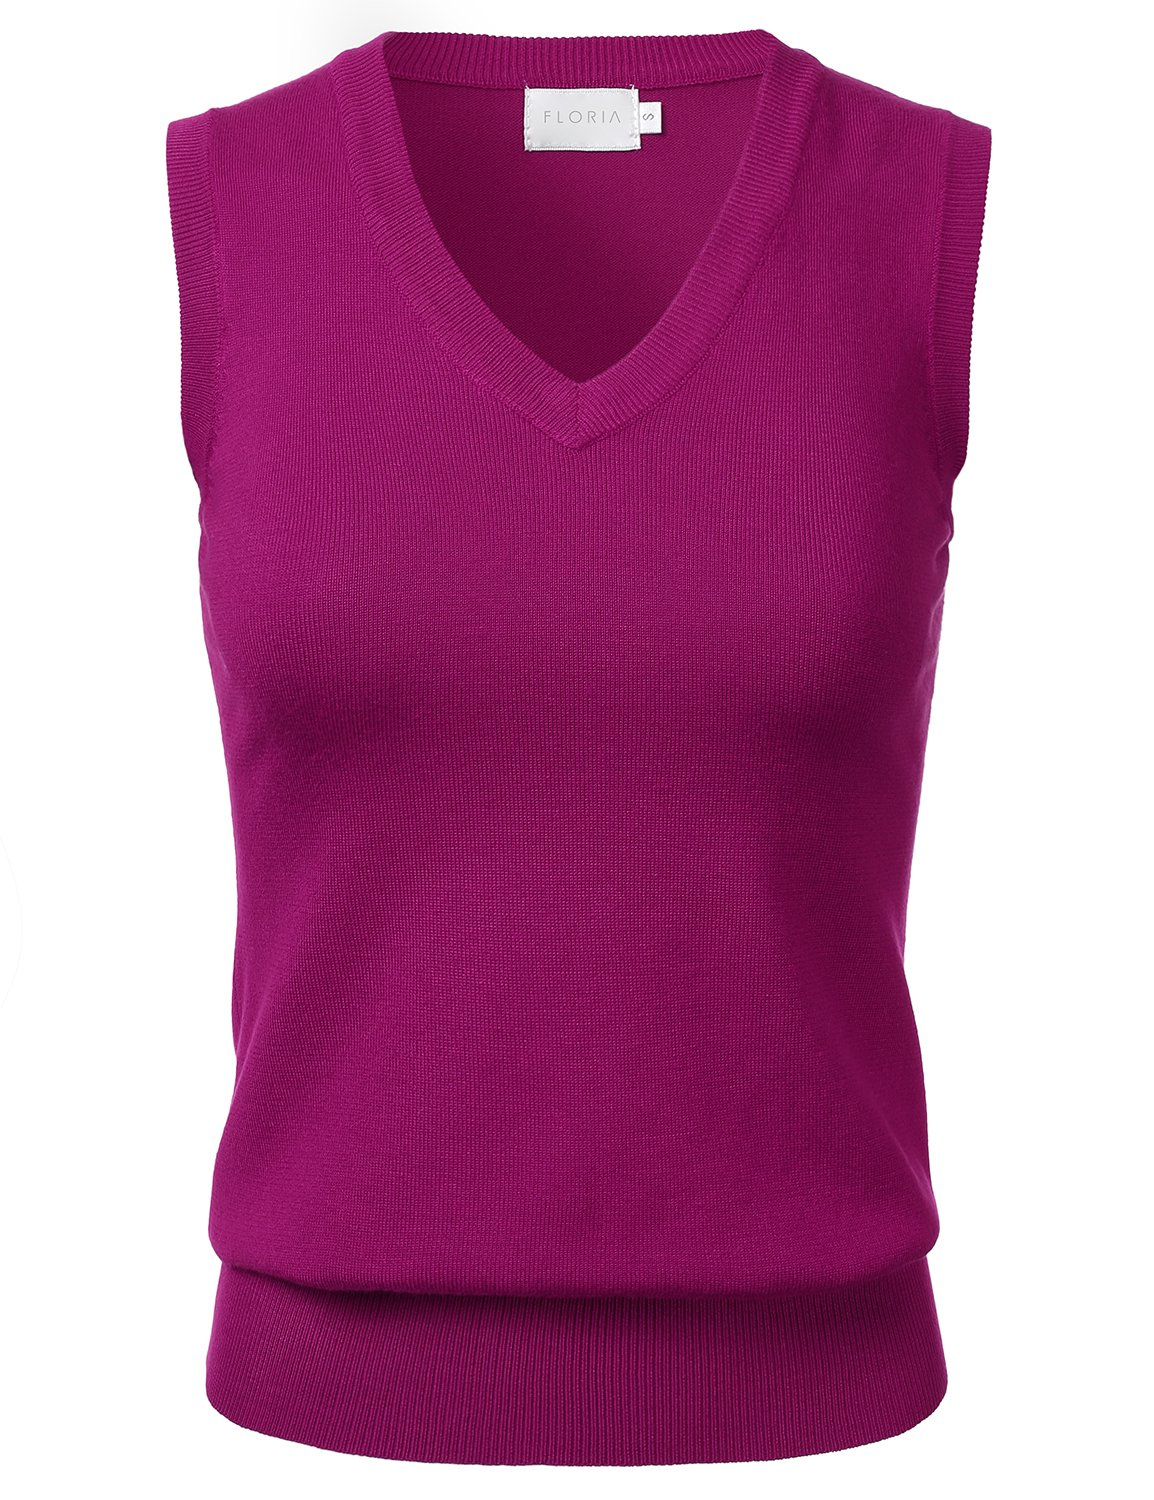 FLORIA Women Solid Clssic V-Neck Sleeveless Pullover Sweater Vest Top Magenta L